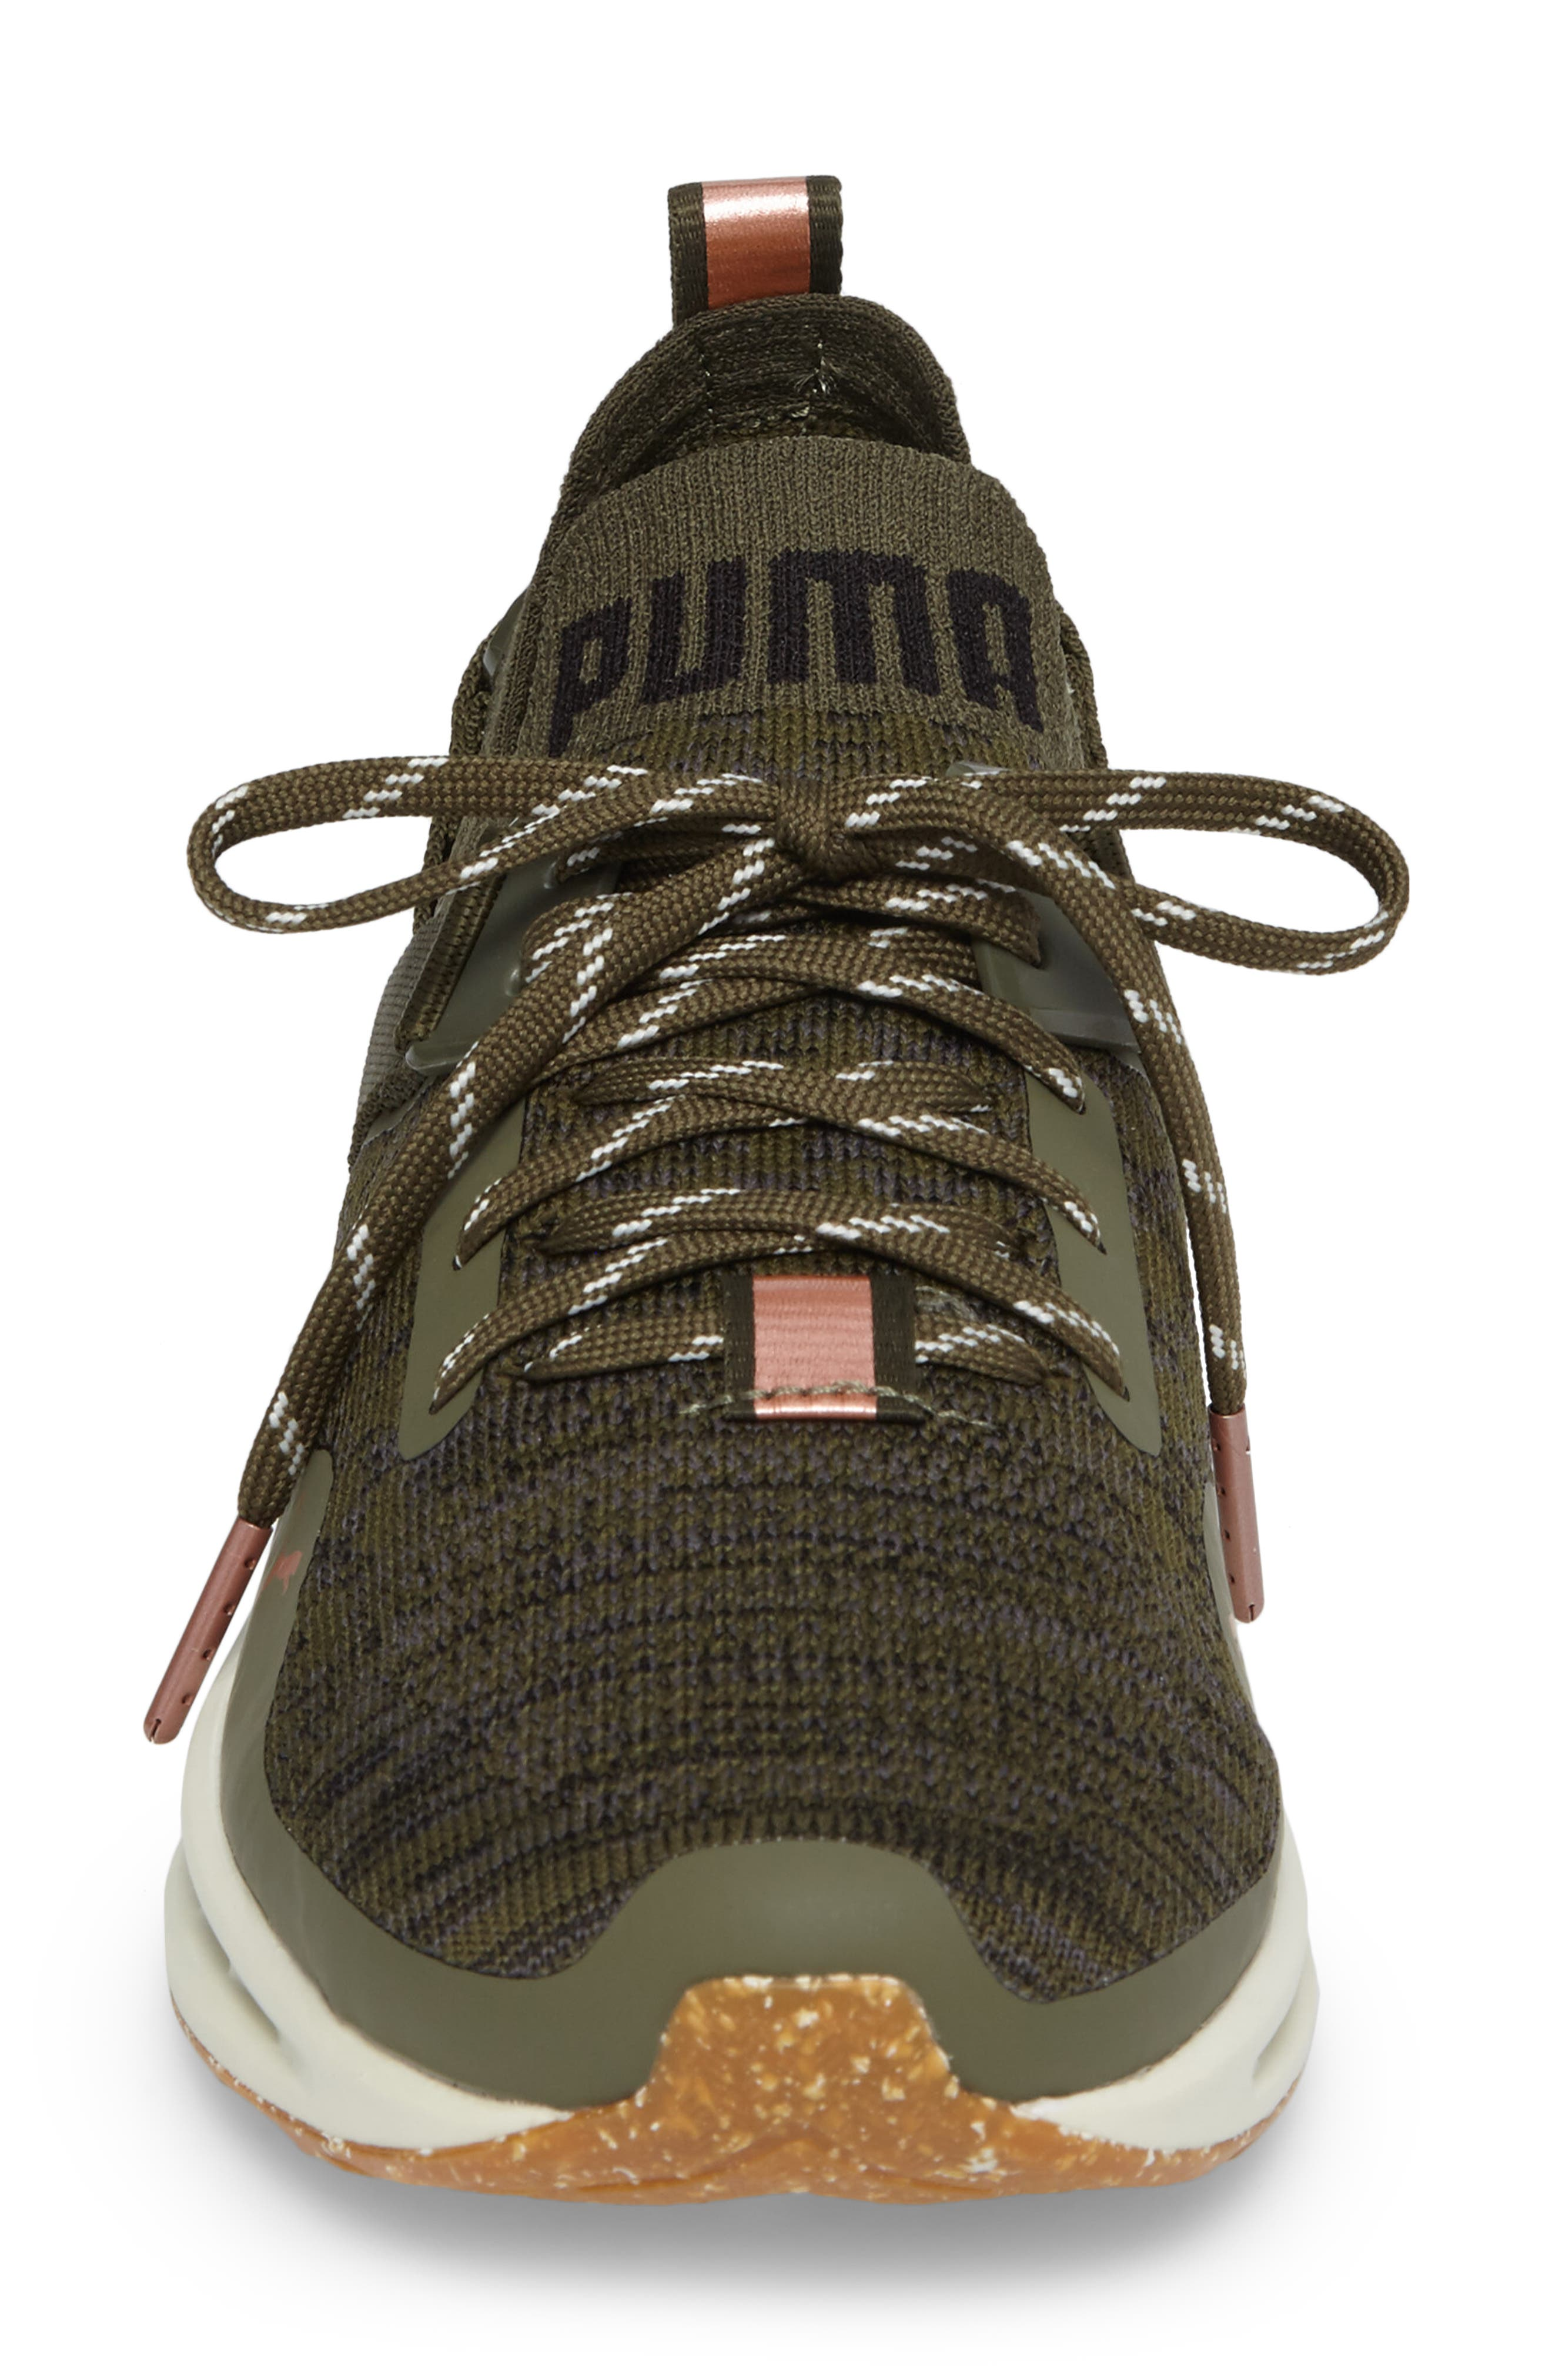 IGNITE evoKNIT Low Sneaker,                             Alternate thumbnail 4, color,                             Olive/ Black/ Quiet Shade